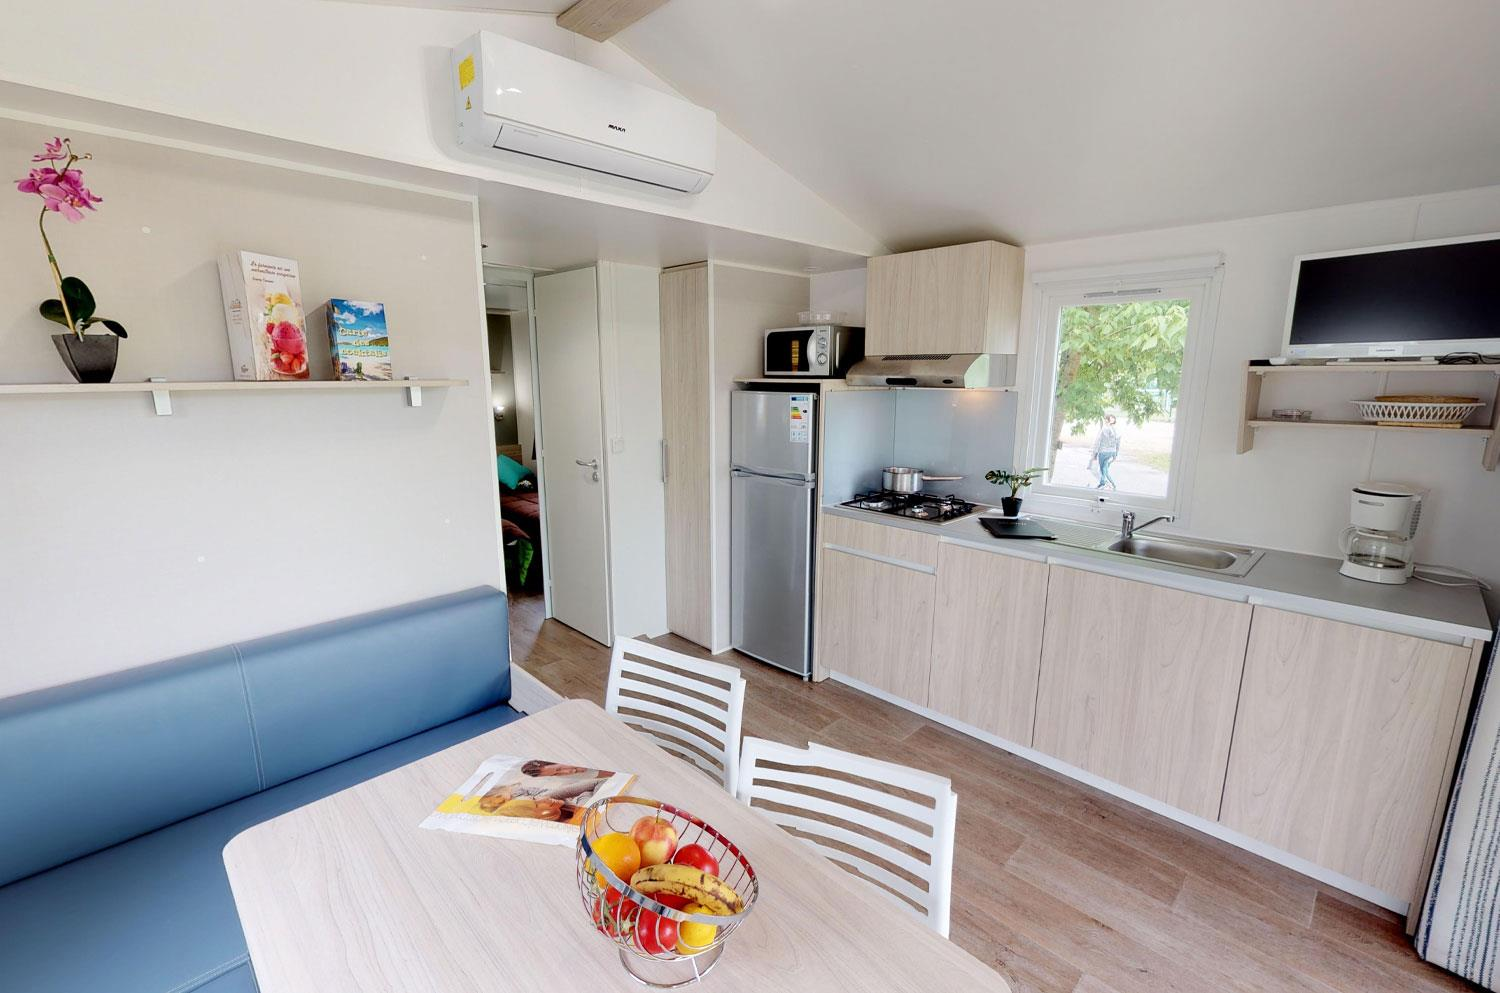 Accommodation - Mobile Home Voilier 2 Bedrooms 27M² 2014/2020/2021 - Camping Ile de la Comtesse